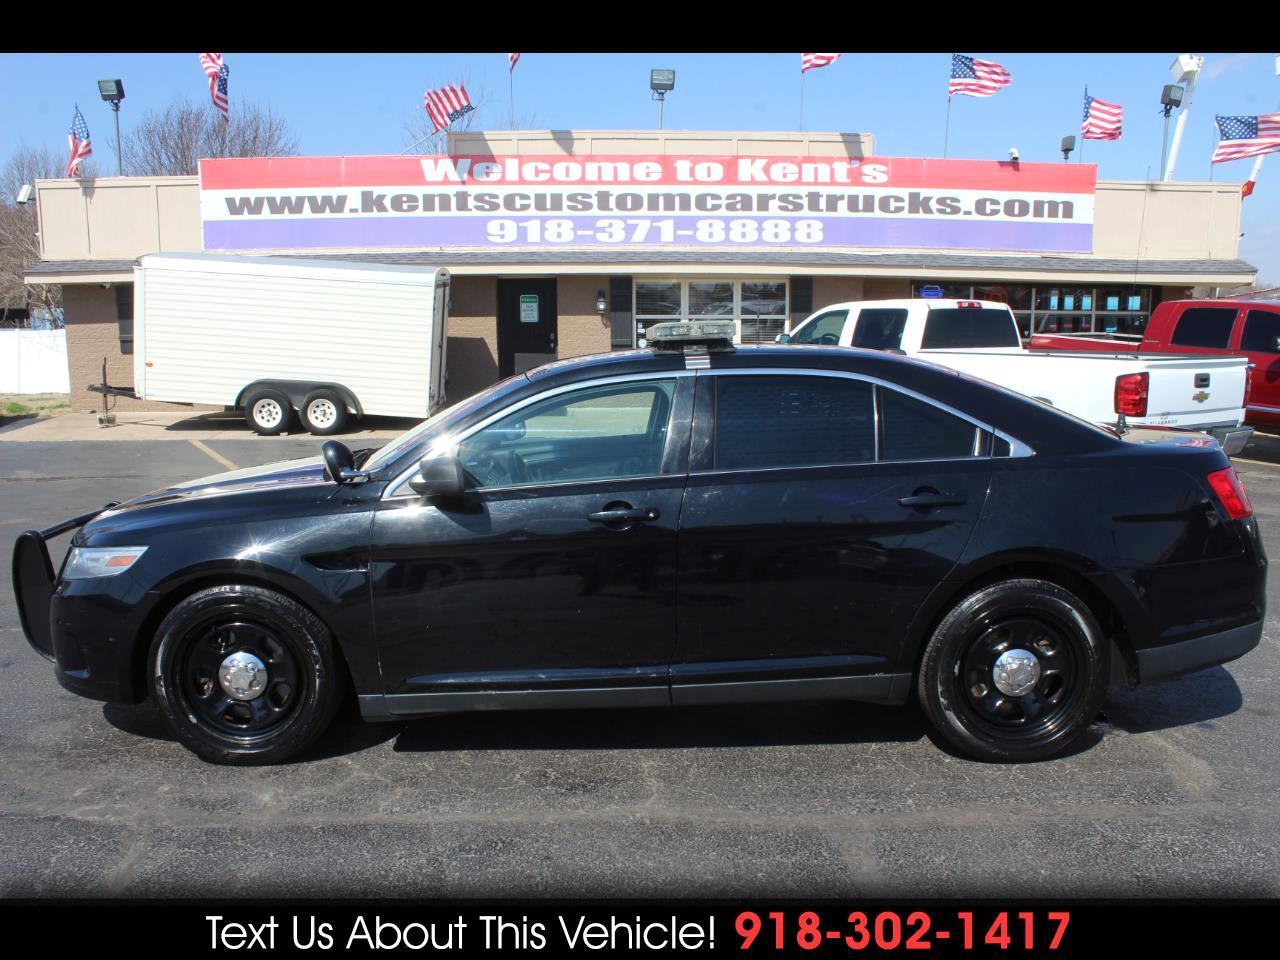 2013 Ford Taurus Police Interceptor K9 Sedan